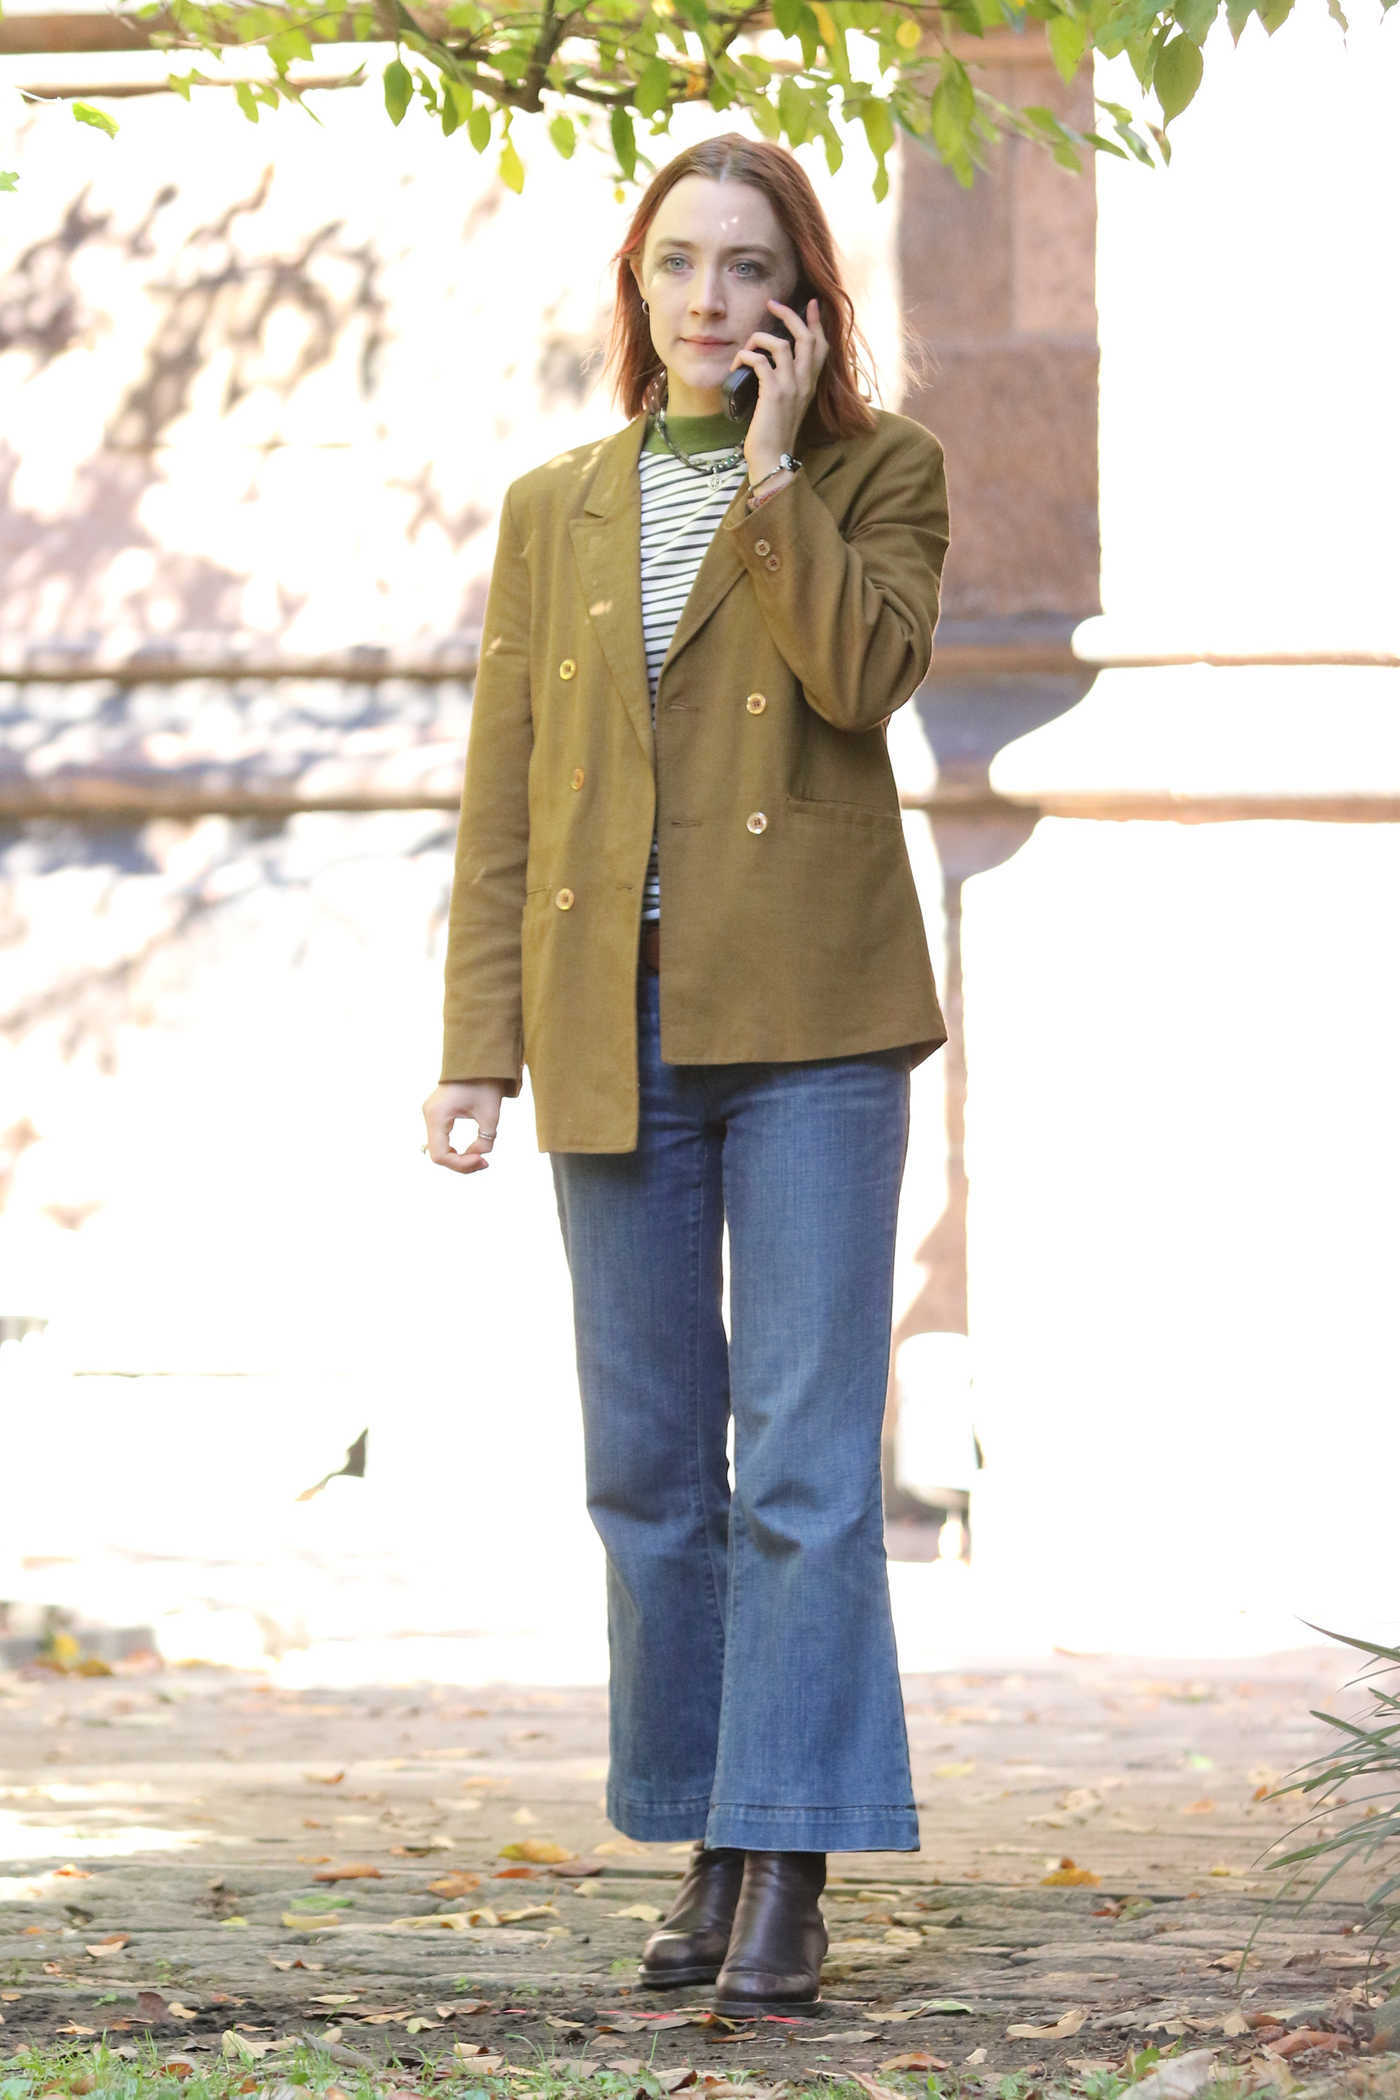 Saoirse Ronan on the Set of Lady Bird in the East Village, New York 10/14/2016